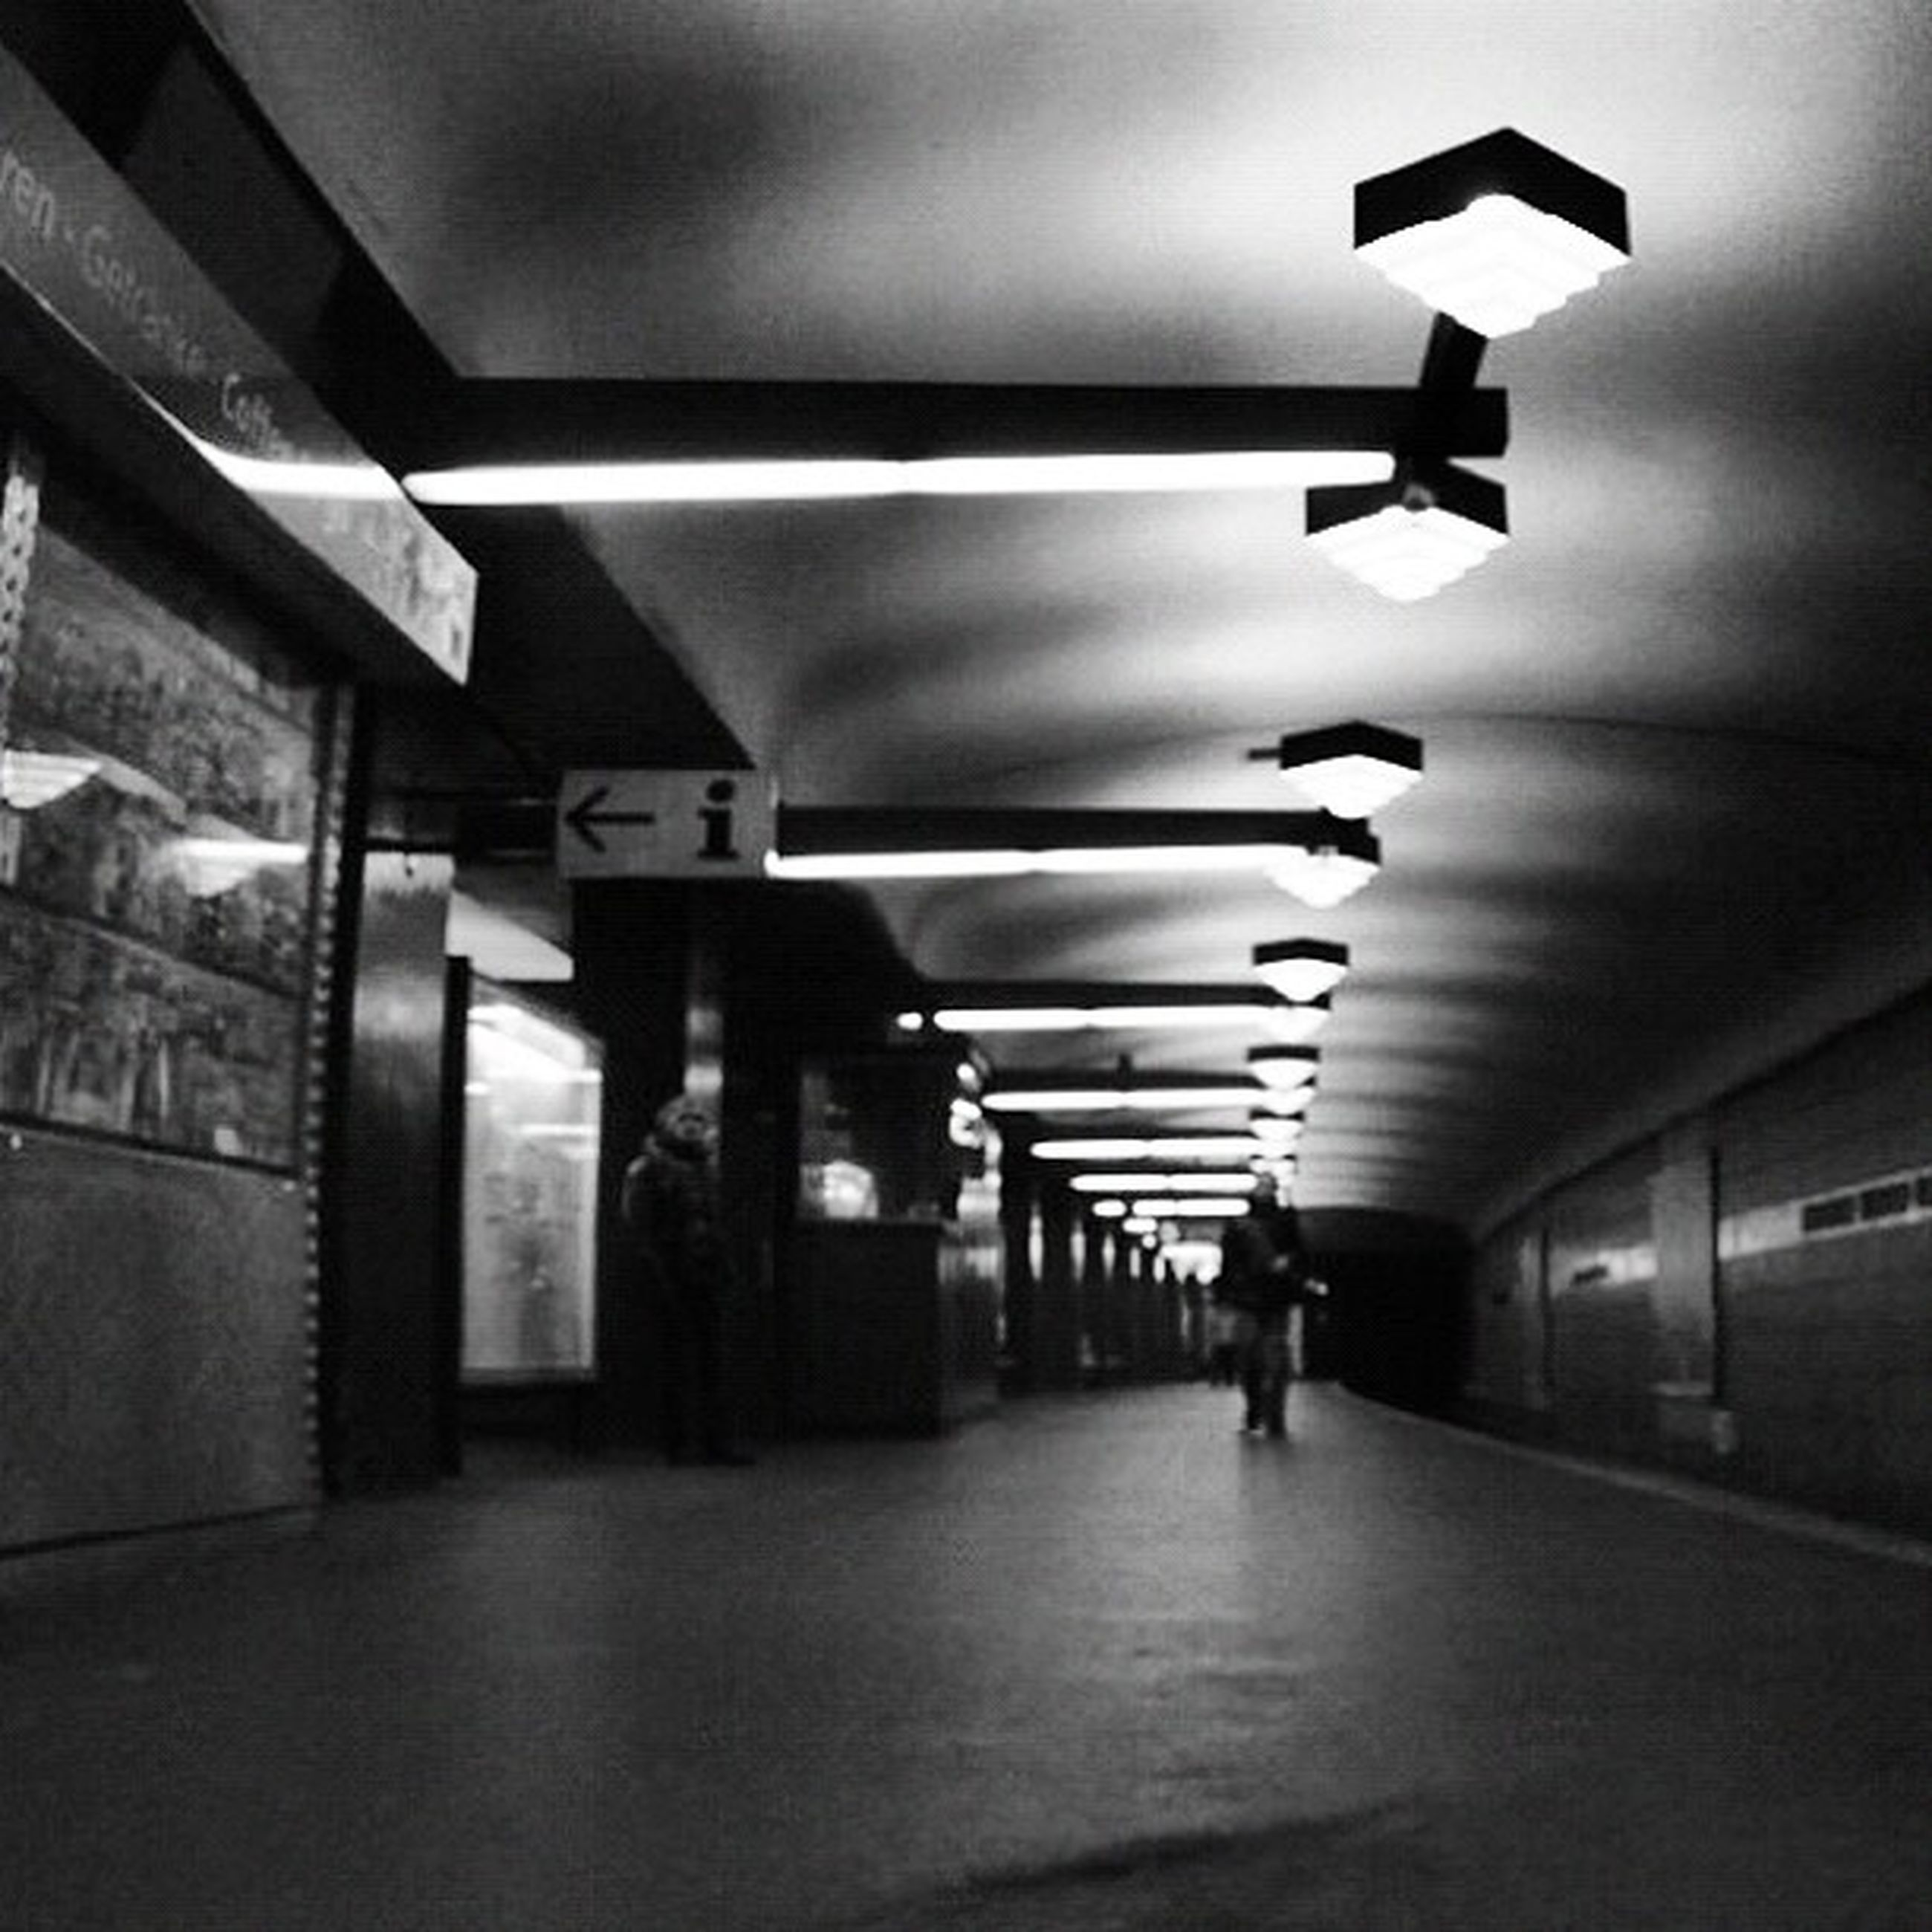 indoors, illuminated, ceiling, lighting equipment, corridor, the way forward, built structure, architecture, subway, wall - building feature, men, subway station, walking, flooring, communication, electric light, diminishing perspective, underground